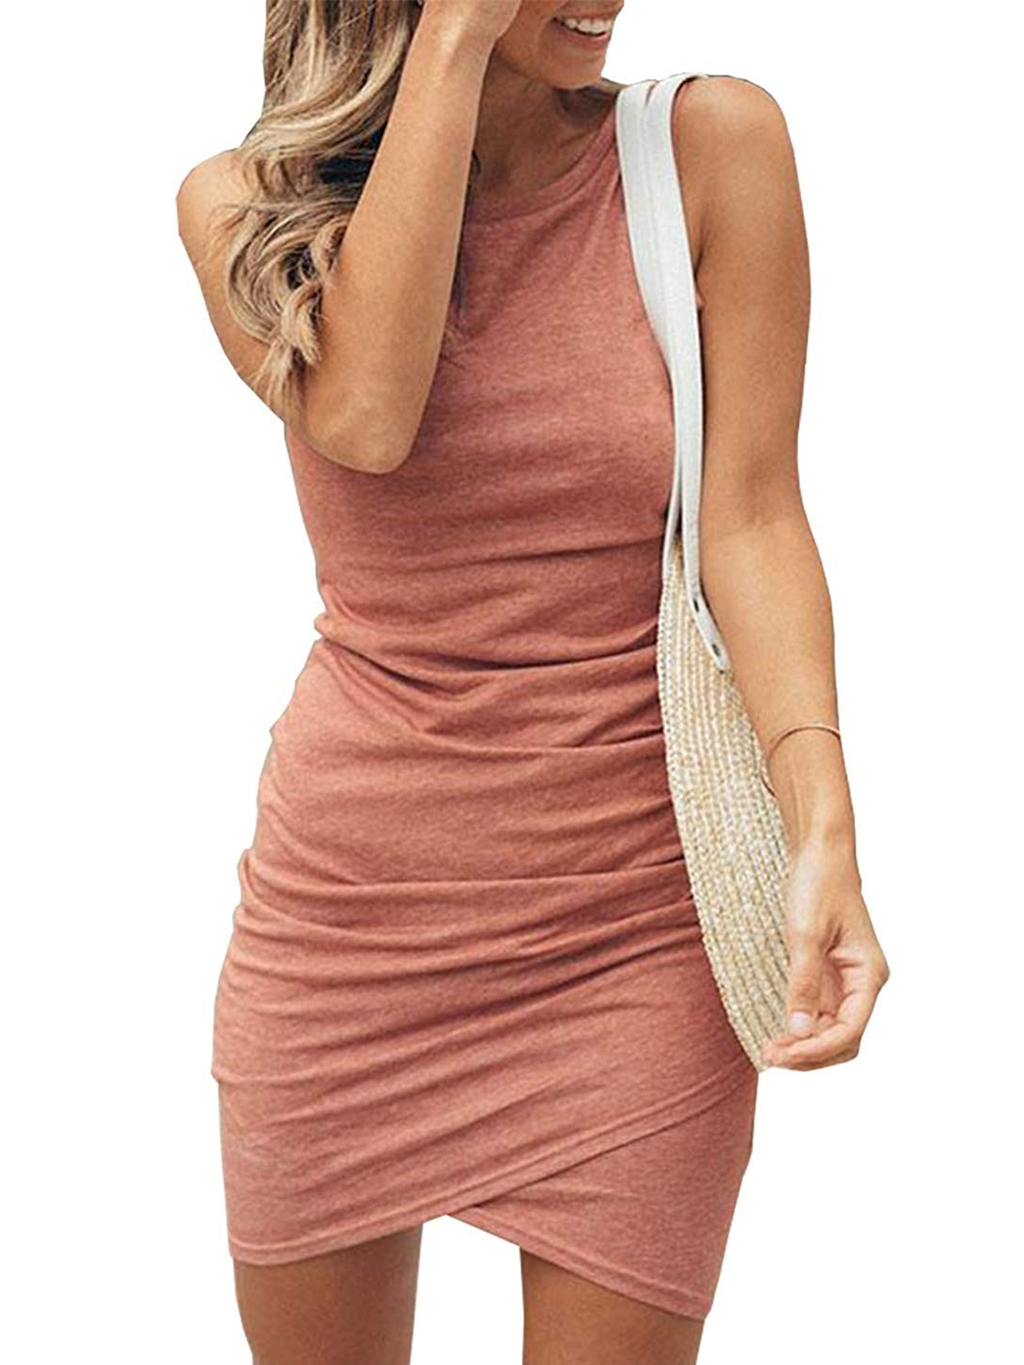 Sexy Plus Size Sleeveless Asymmetric Bodycon Dresses Rikkishop